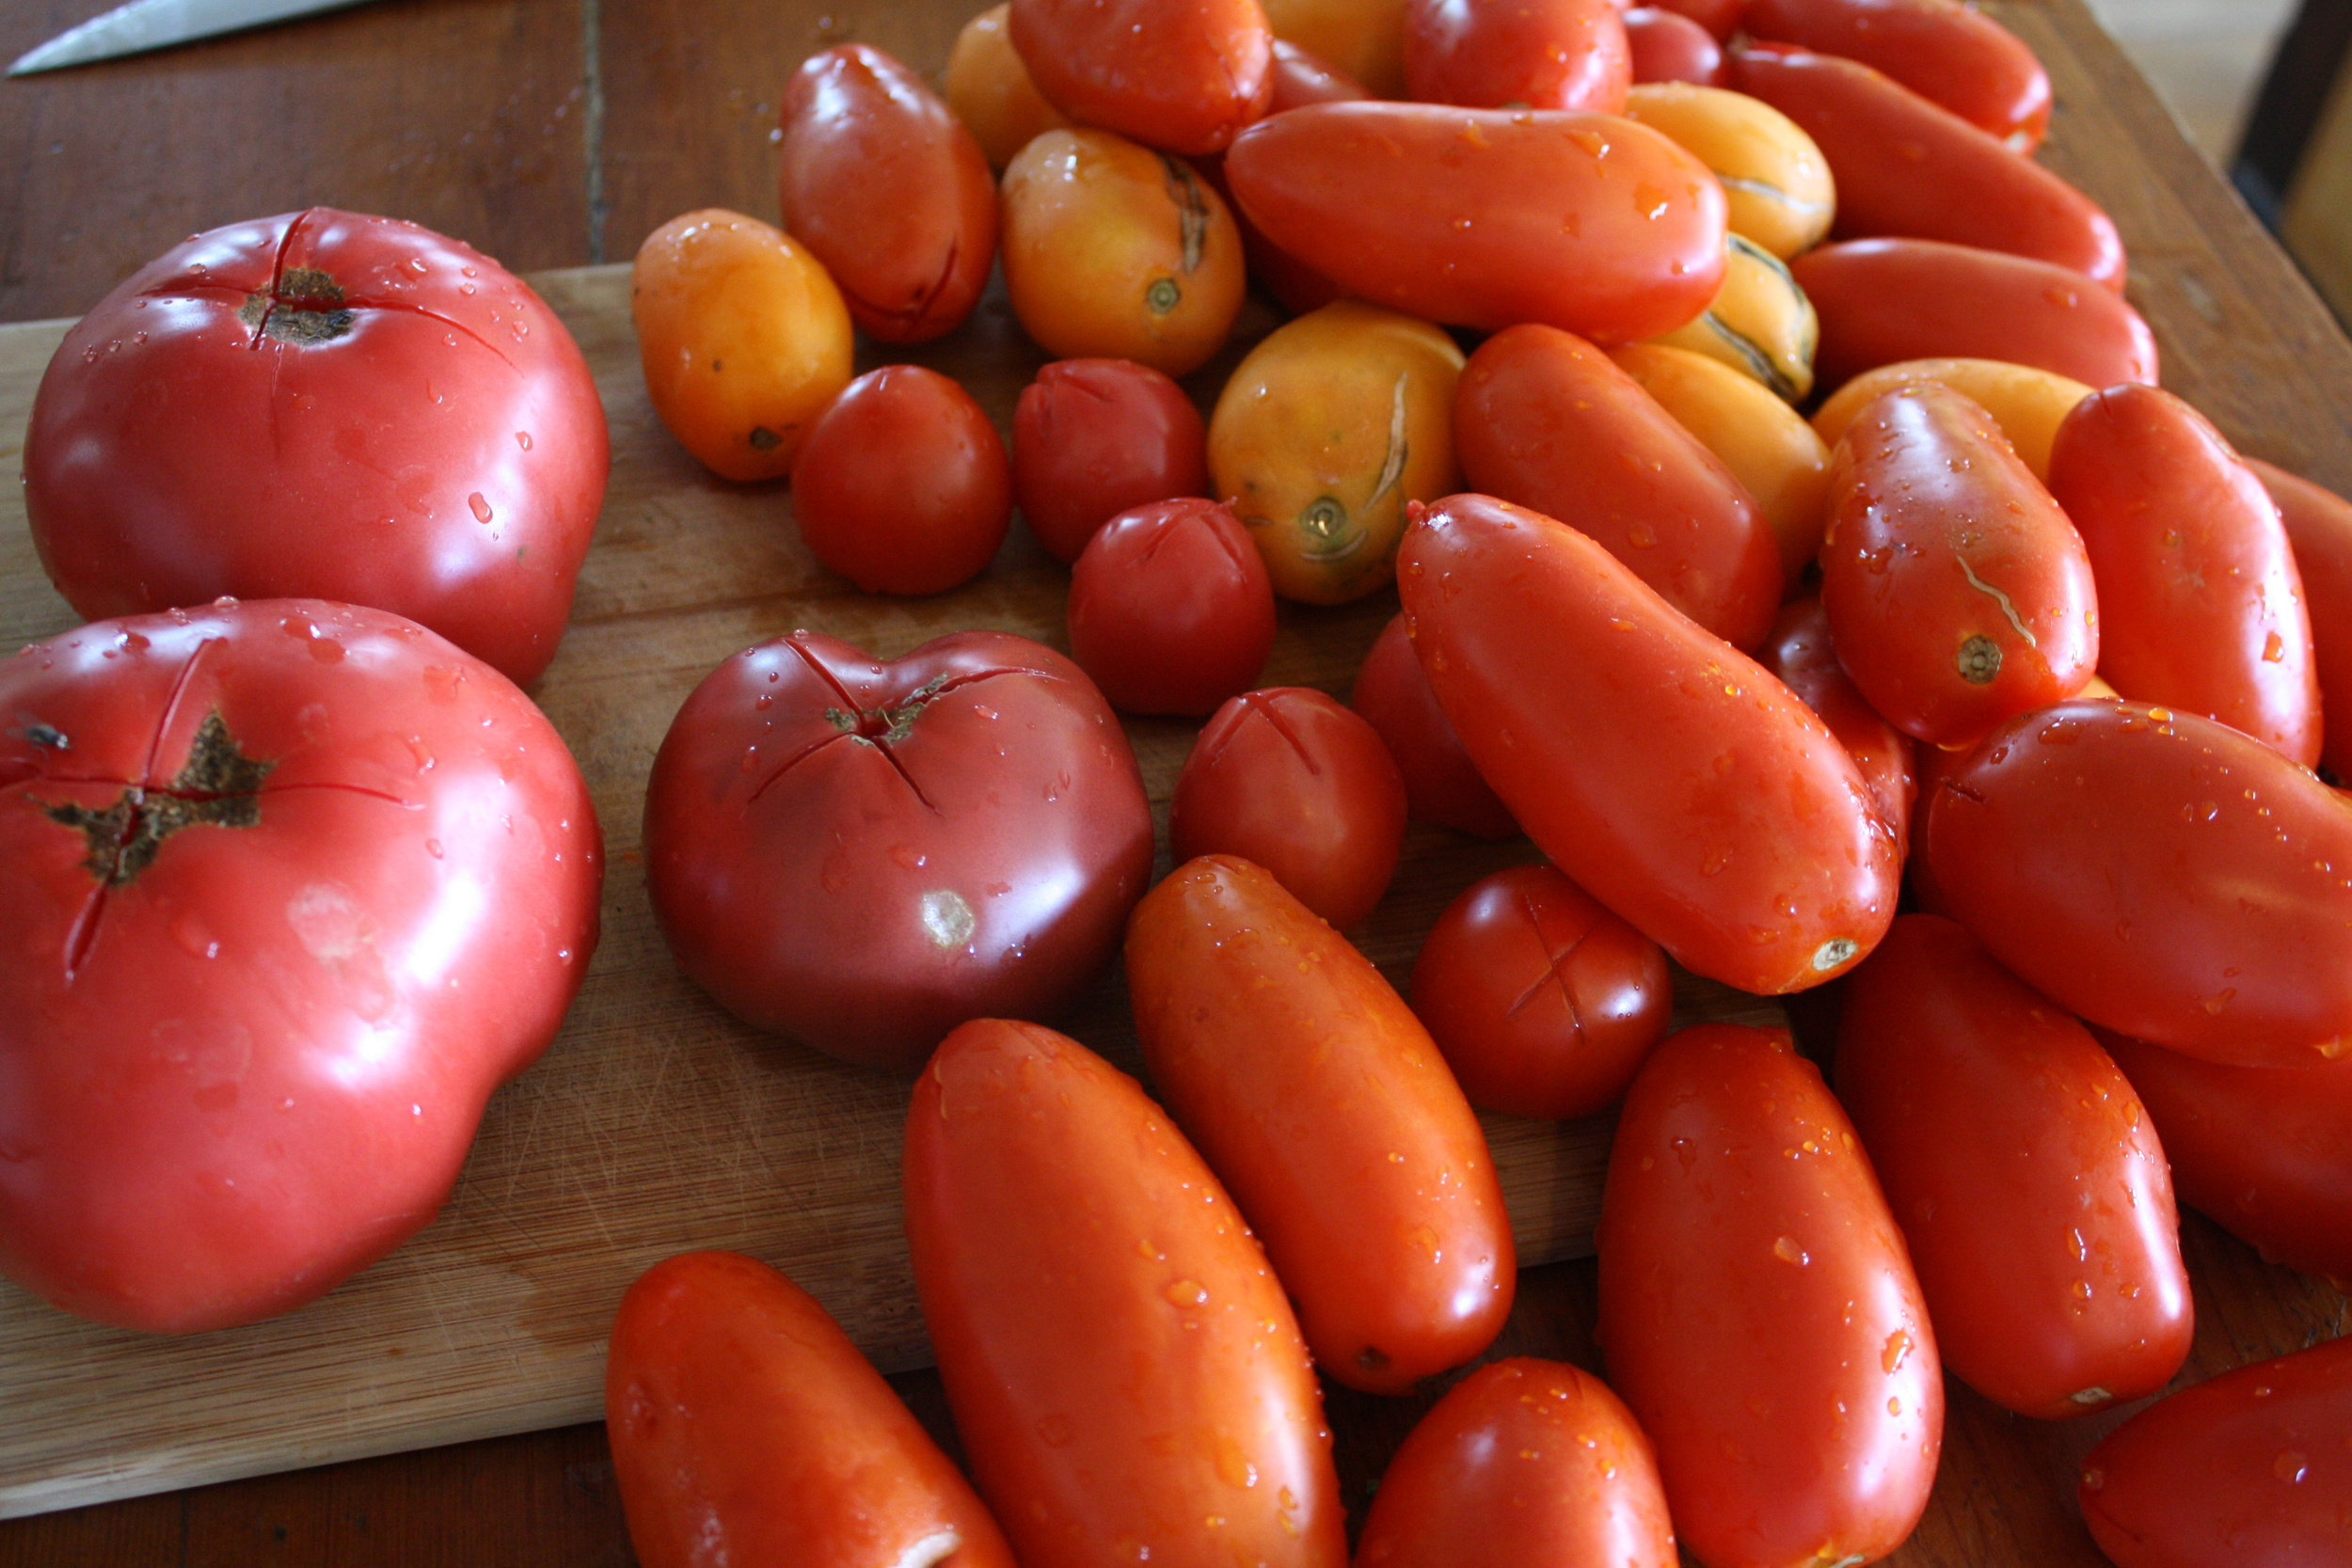 Tomatoes scored to be blanched and de-skinned for sauce